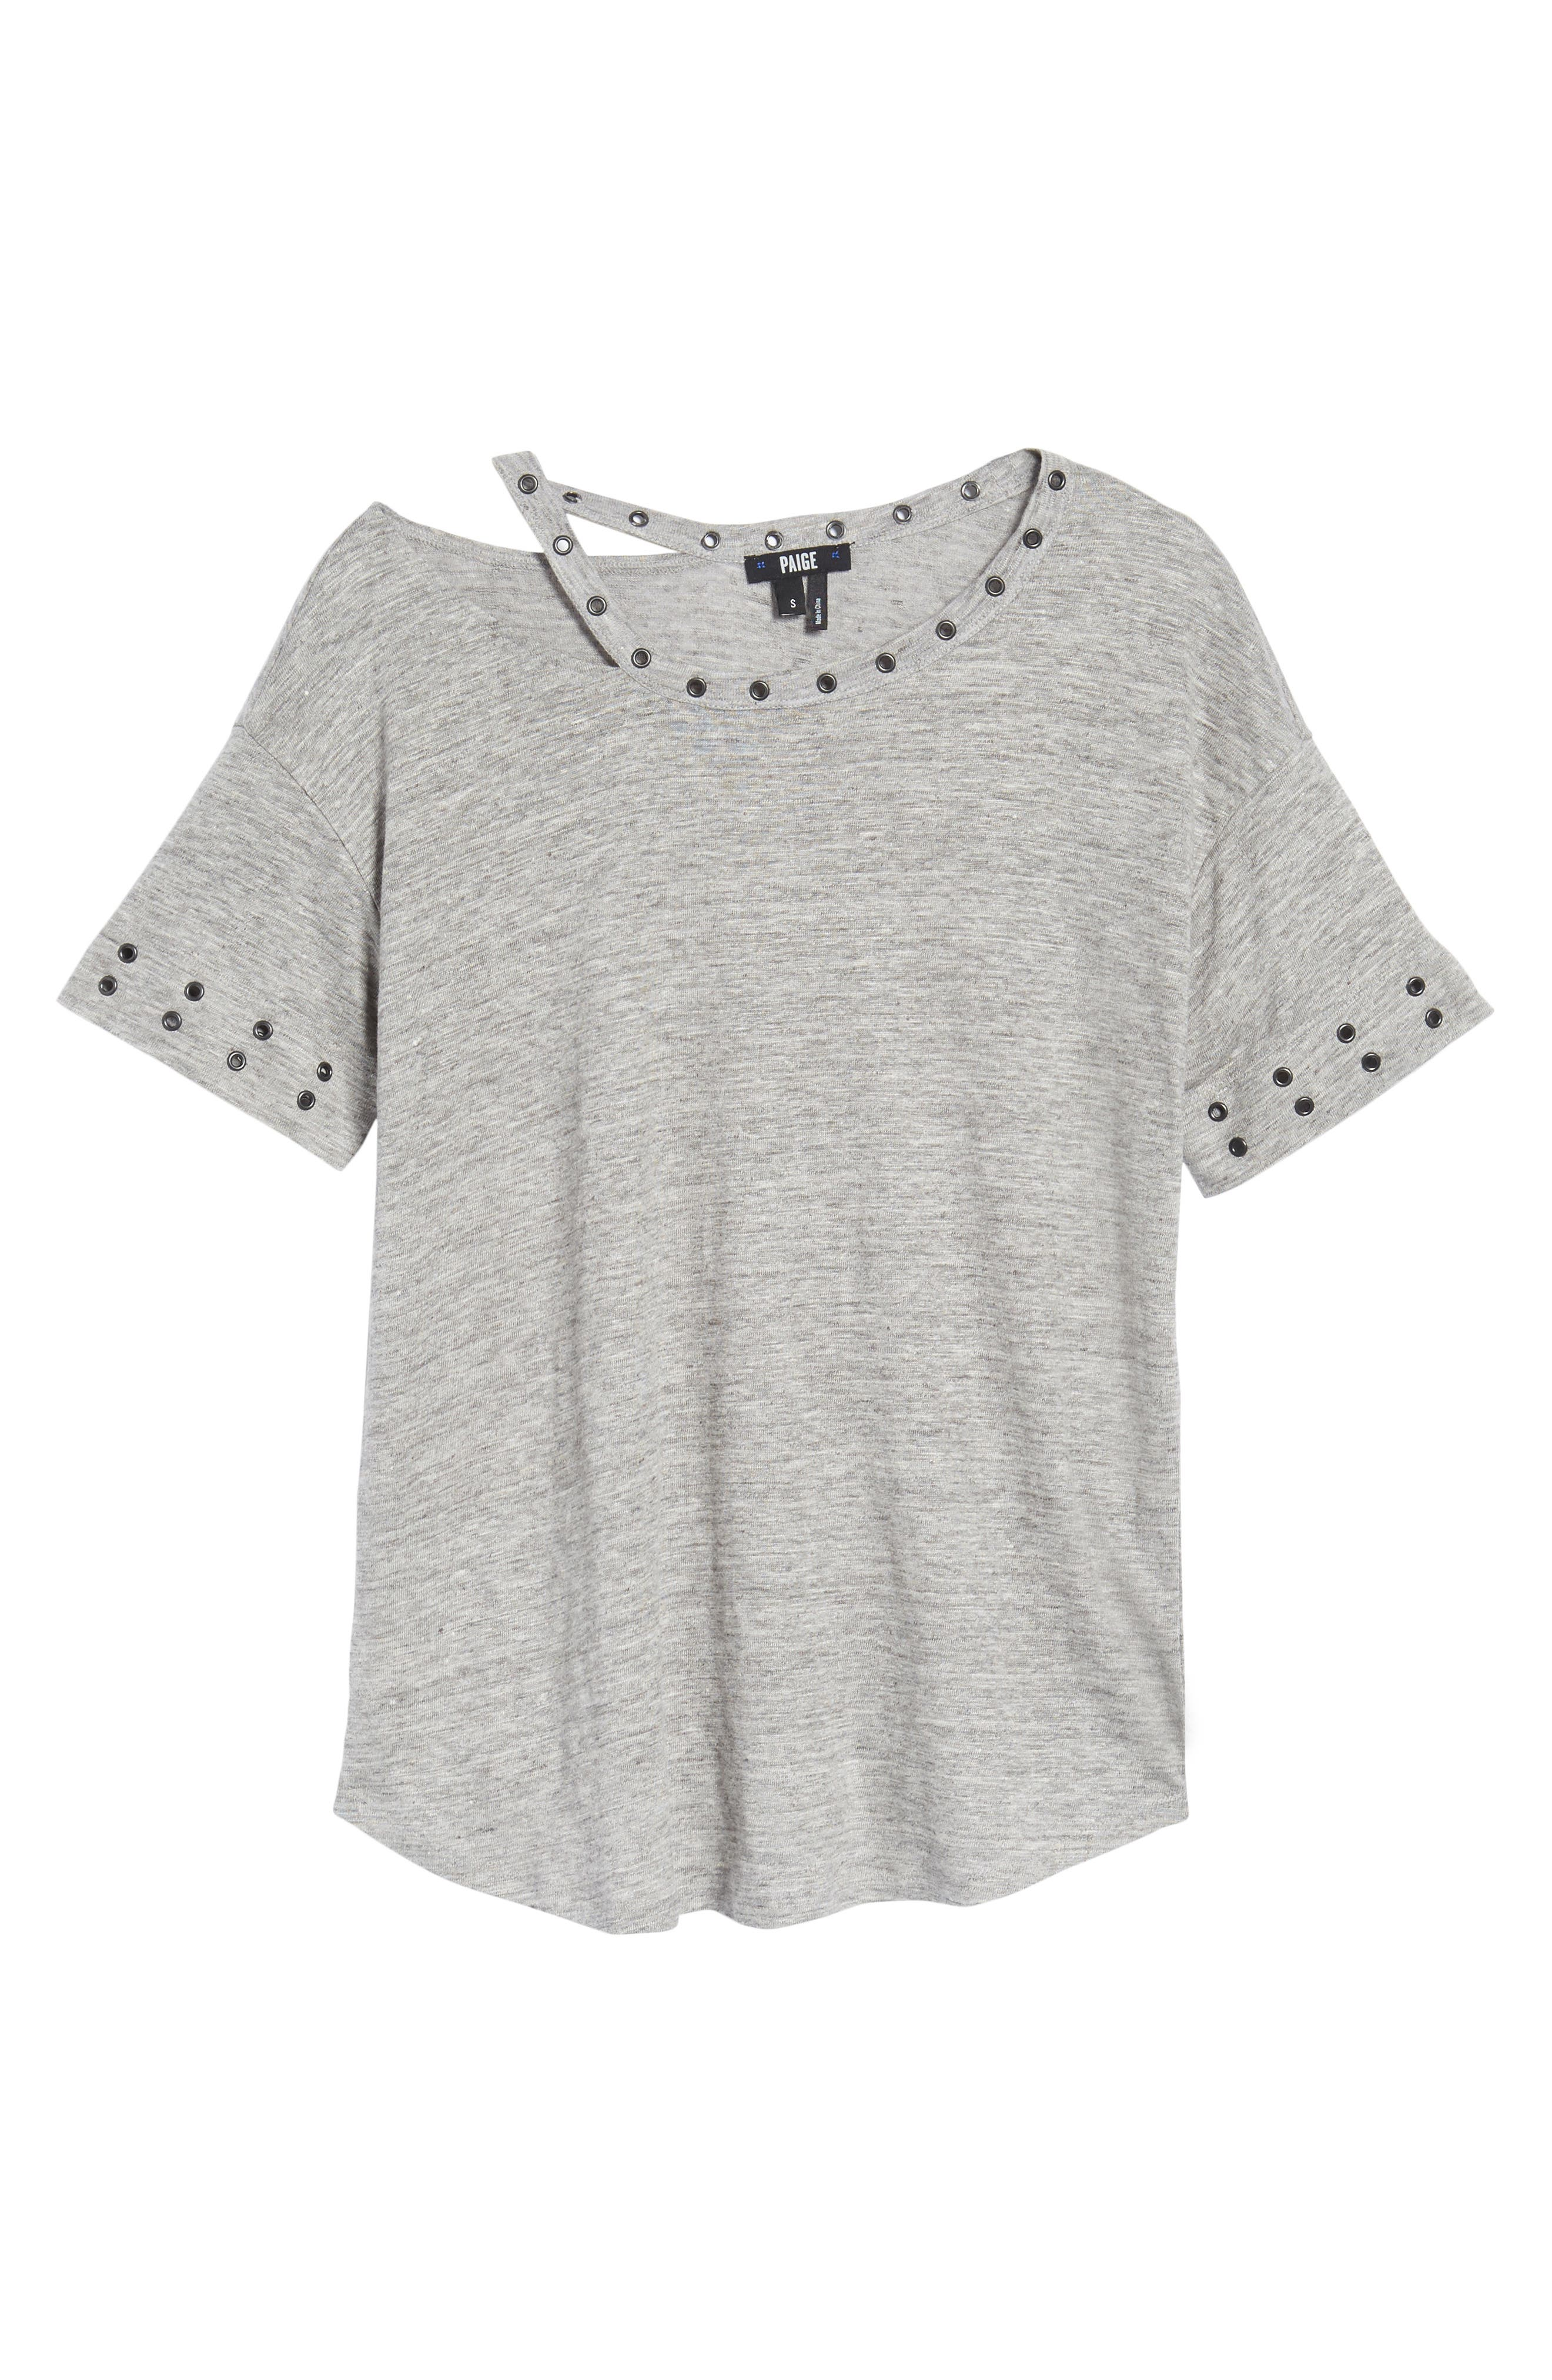 Shanni Grommet Tee,                             Alternate thumbnail 6, color,                             Heather Grey